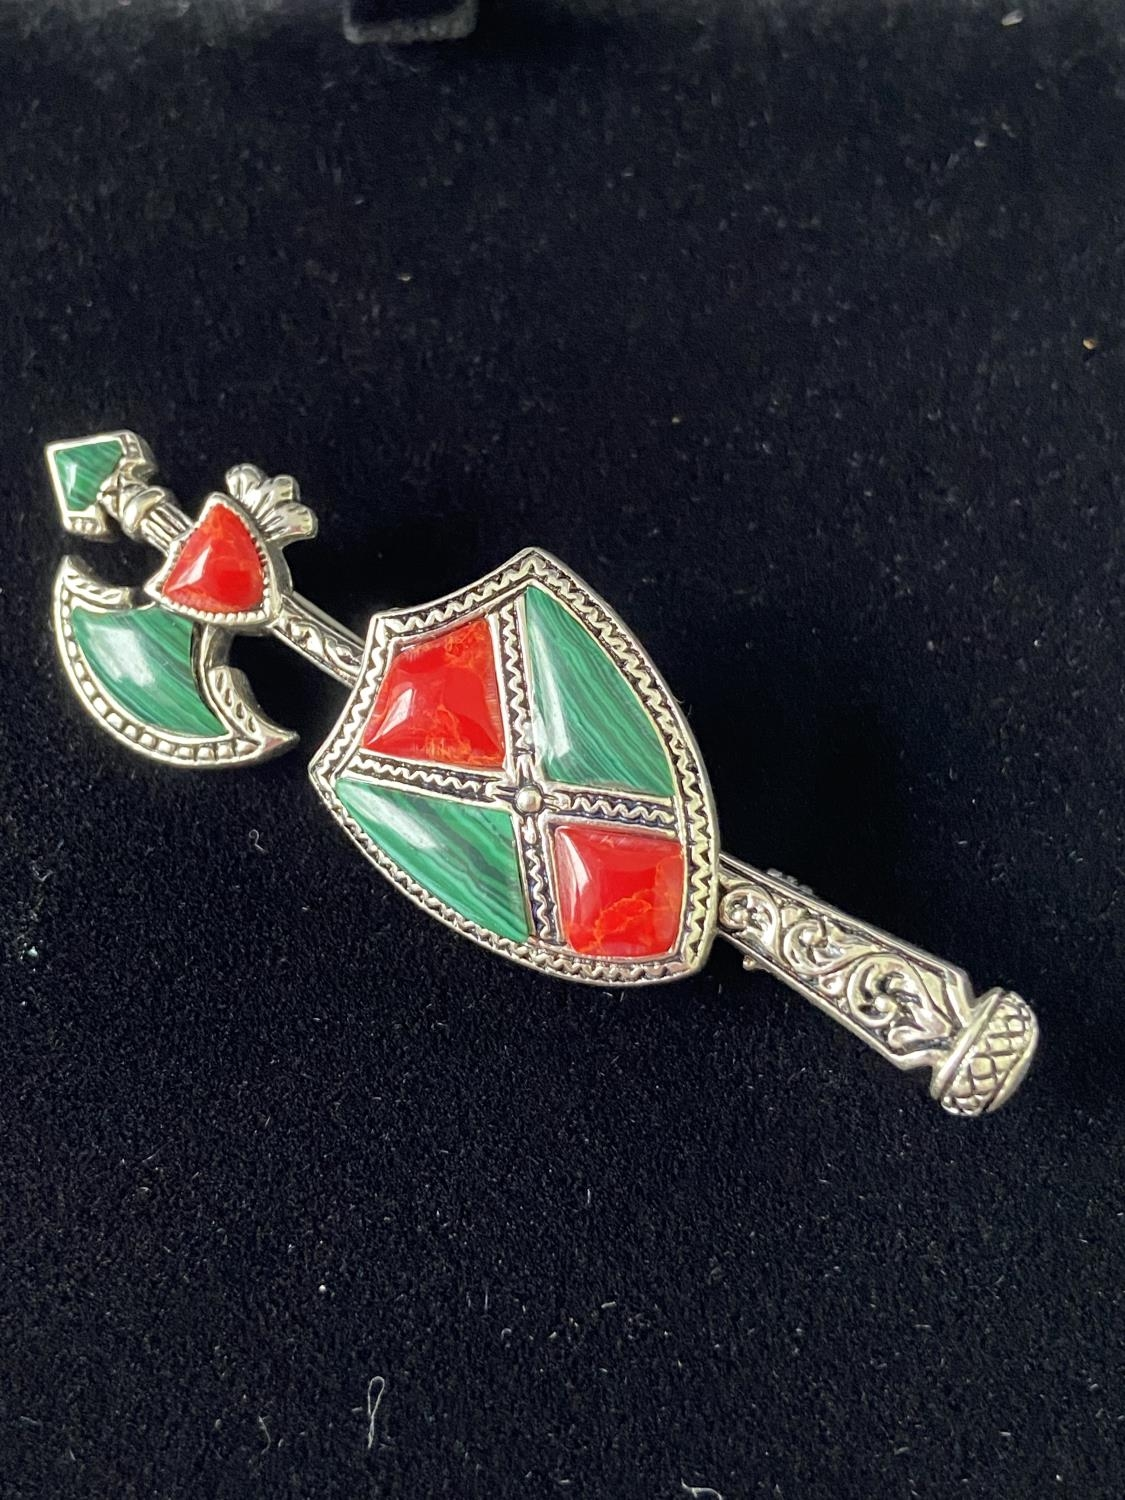 A Silver and malachite arrow shaped brooch. [5.3cm in length] - Image 2 of 6